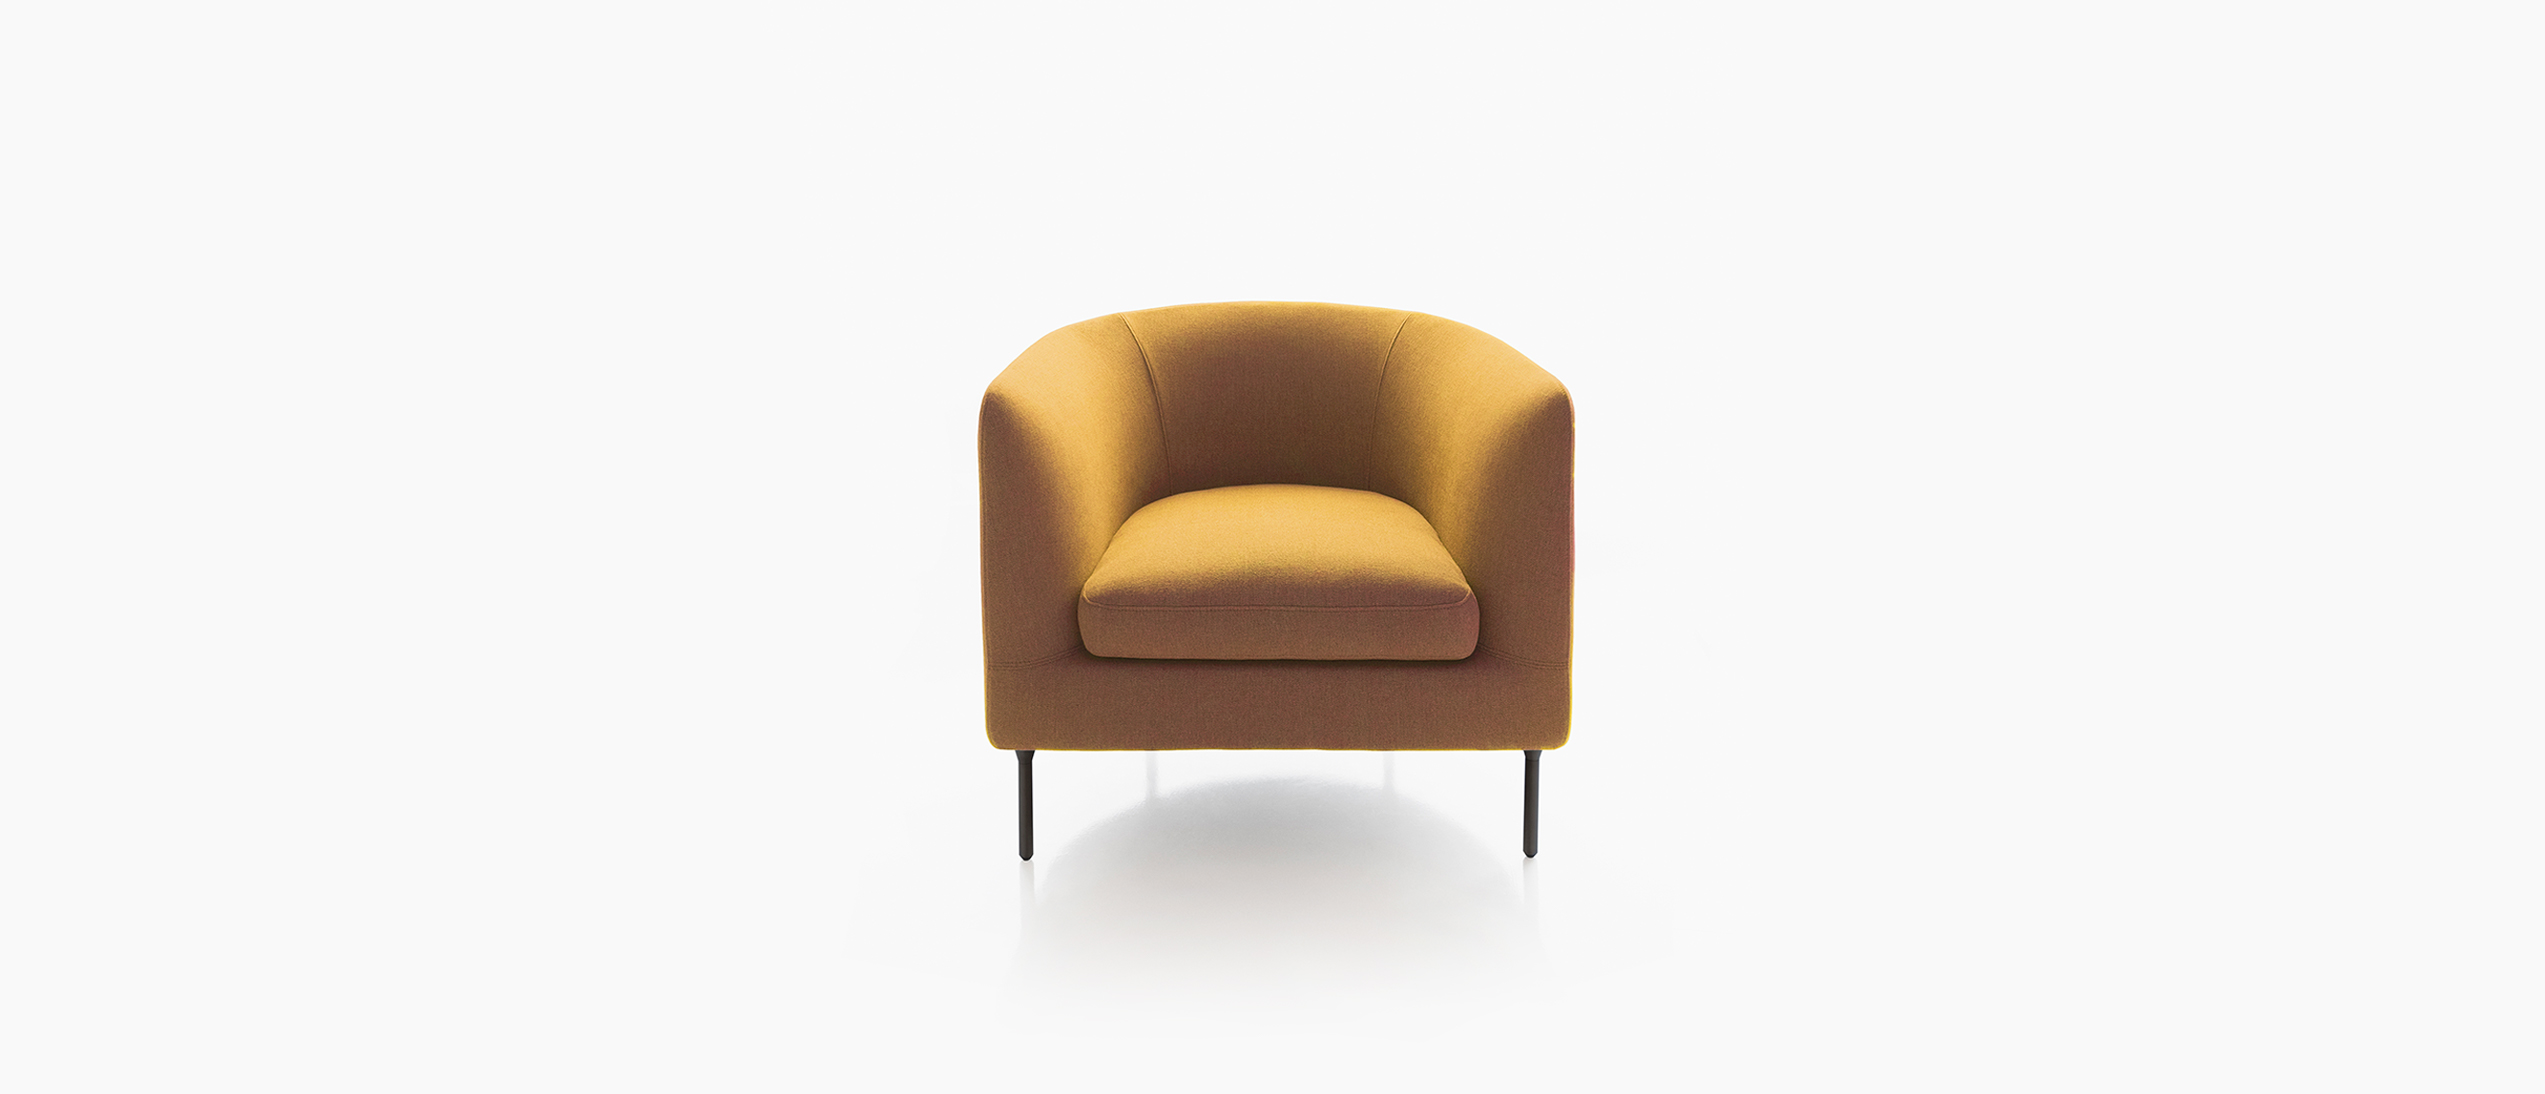 ICFF 2019 Bensen's Minimalist Contemporary Furniture Designs - Delta Club Chairs - icff ICFF 2019: Bensen's Minimalist Contemporary Furniture Designs ICFF 2019 Bensens Minimalist Contemporary Furniture Designs Delta Club Chairs